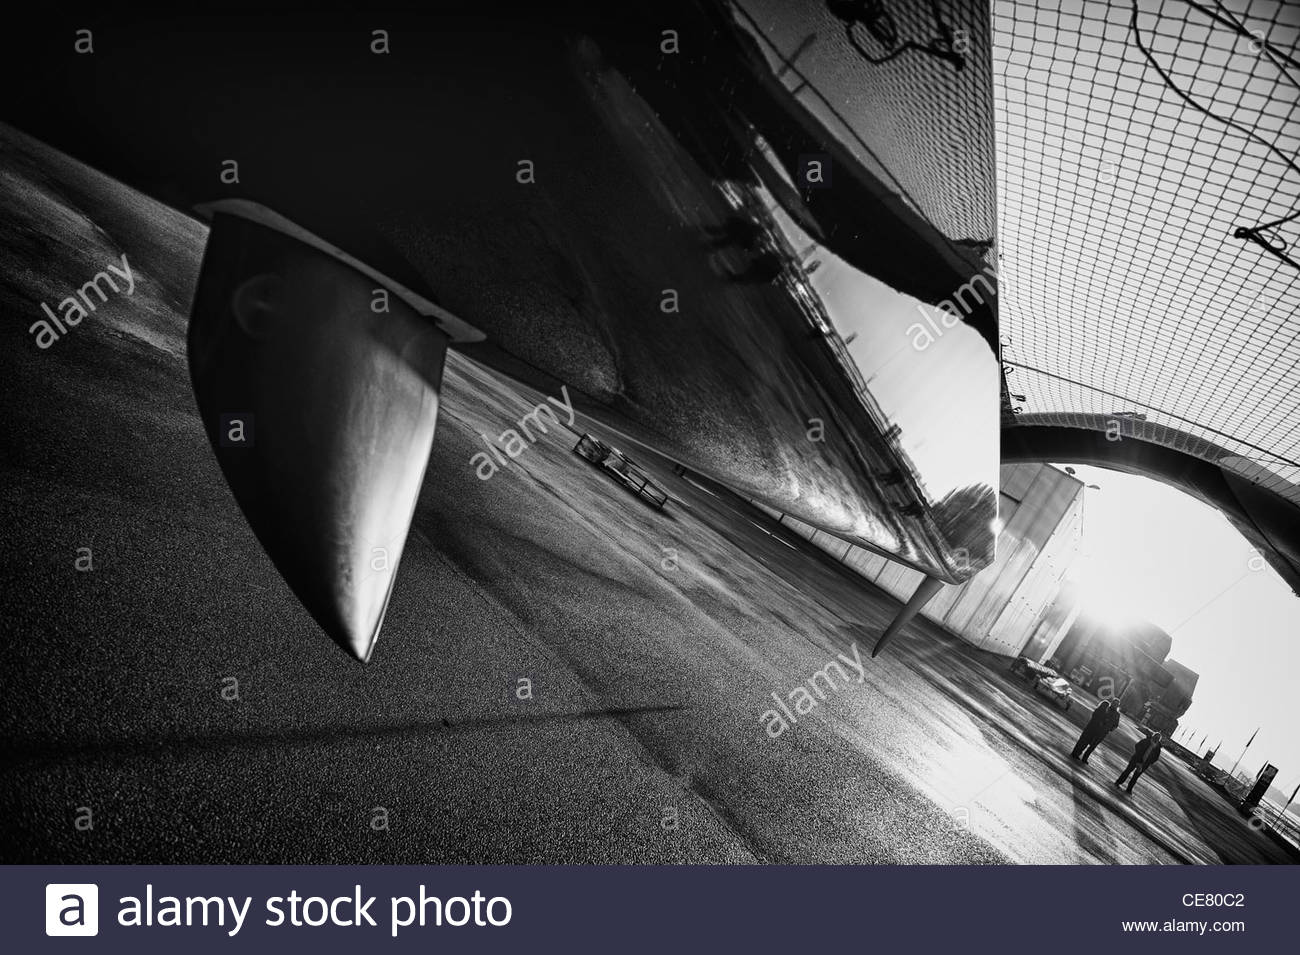 LORIENT, FR, JANUARY 26th 2012: MOD70 n°5 Spindrift racing construction, Lorient, France. - Stock Image